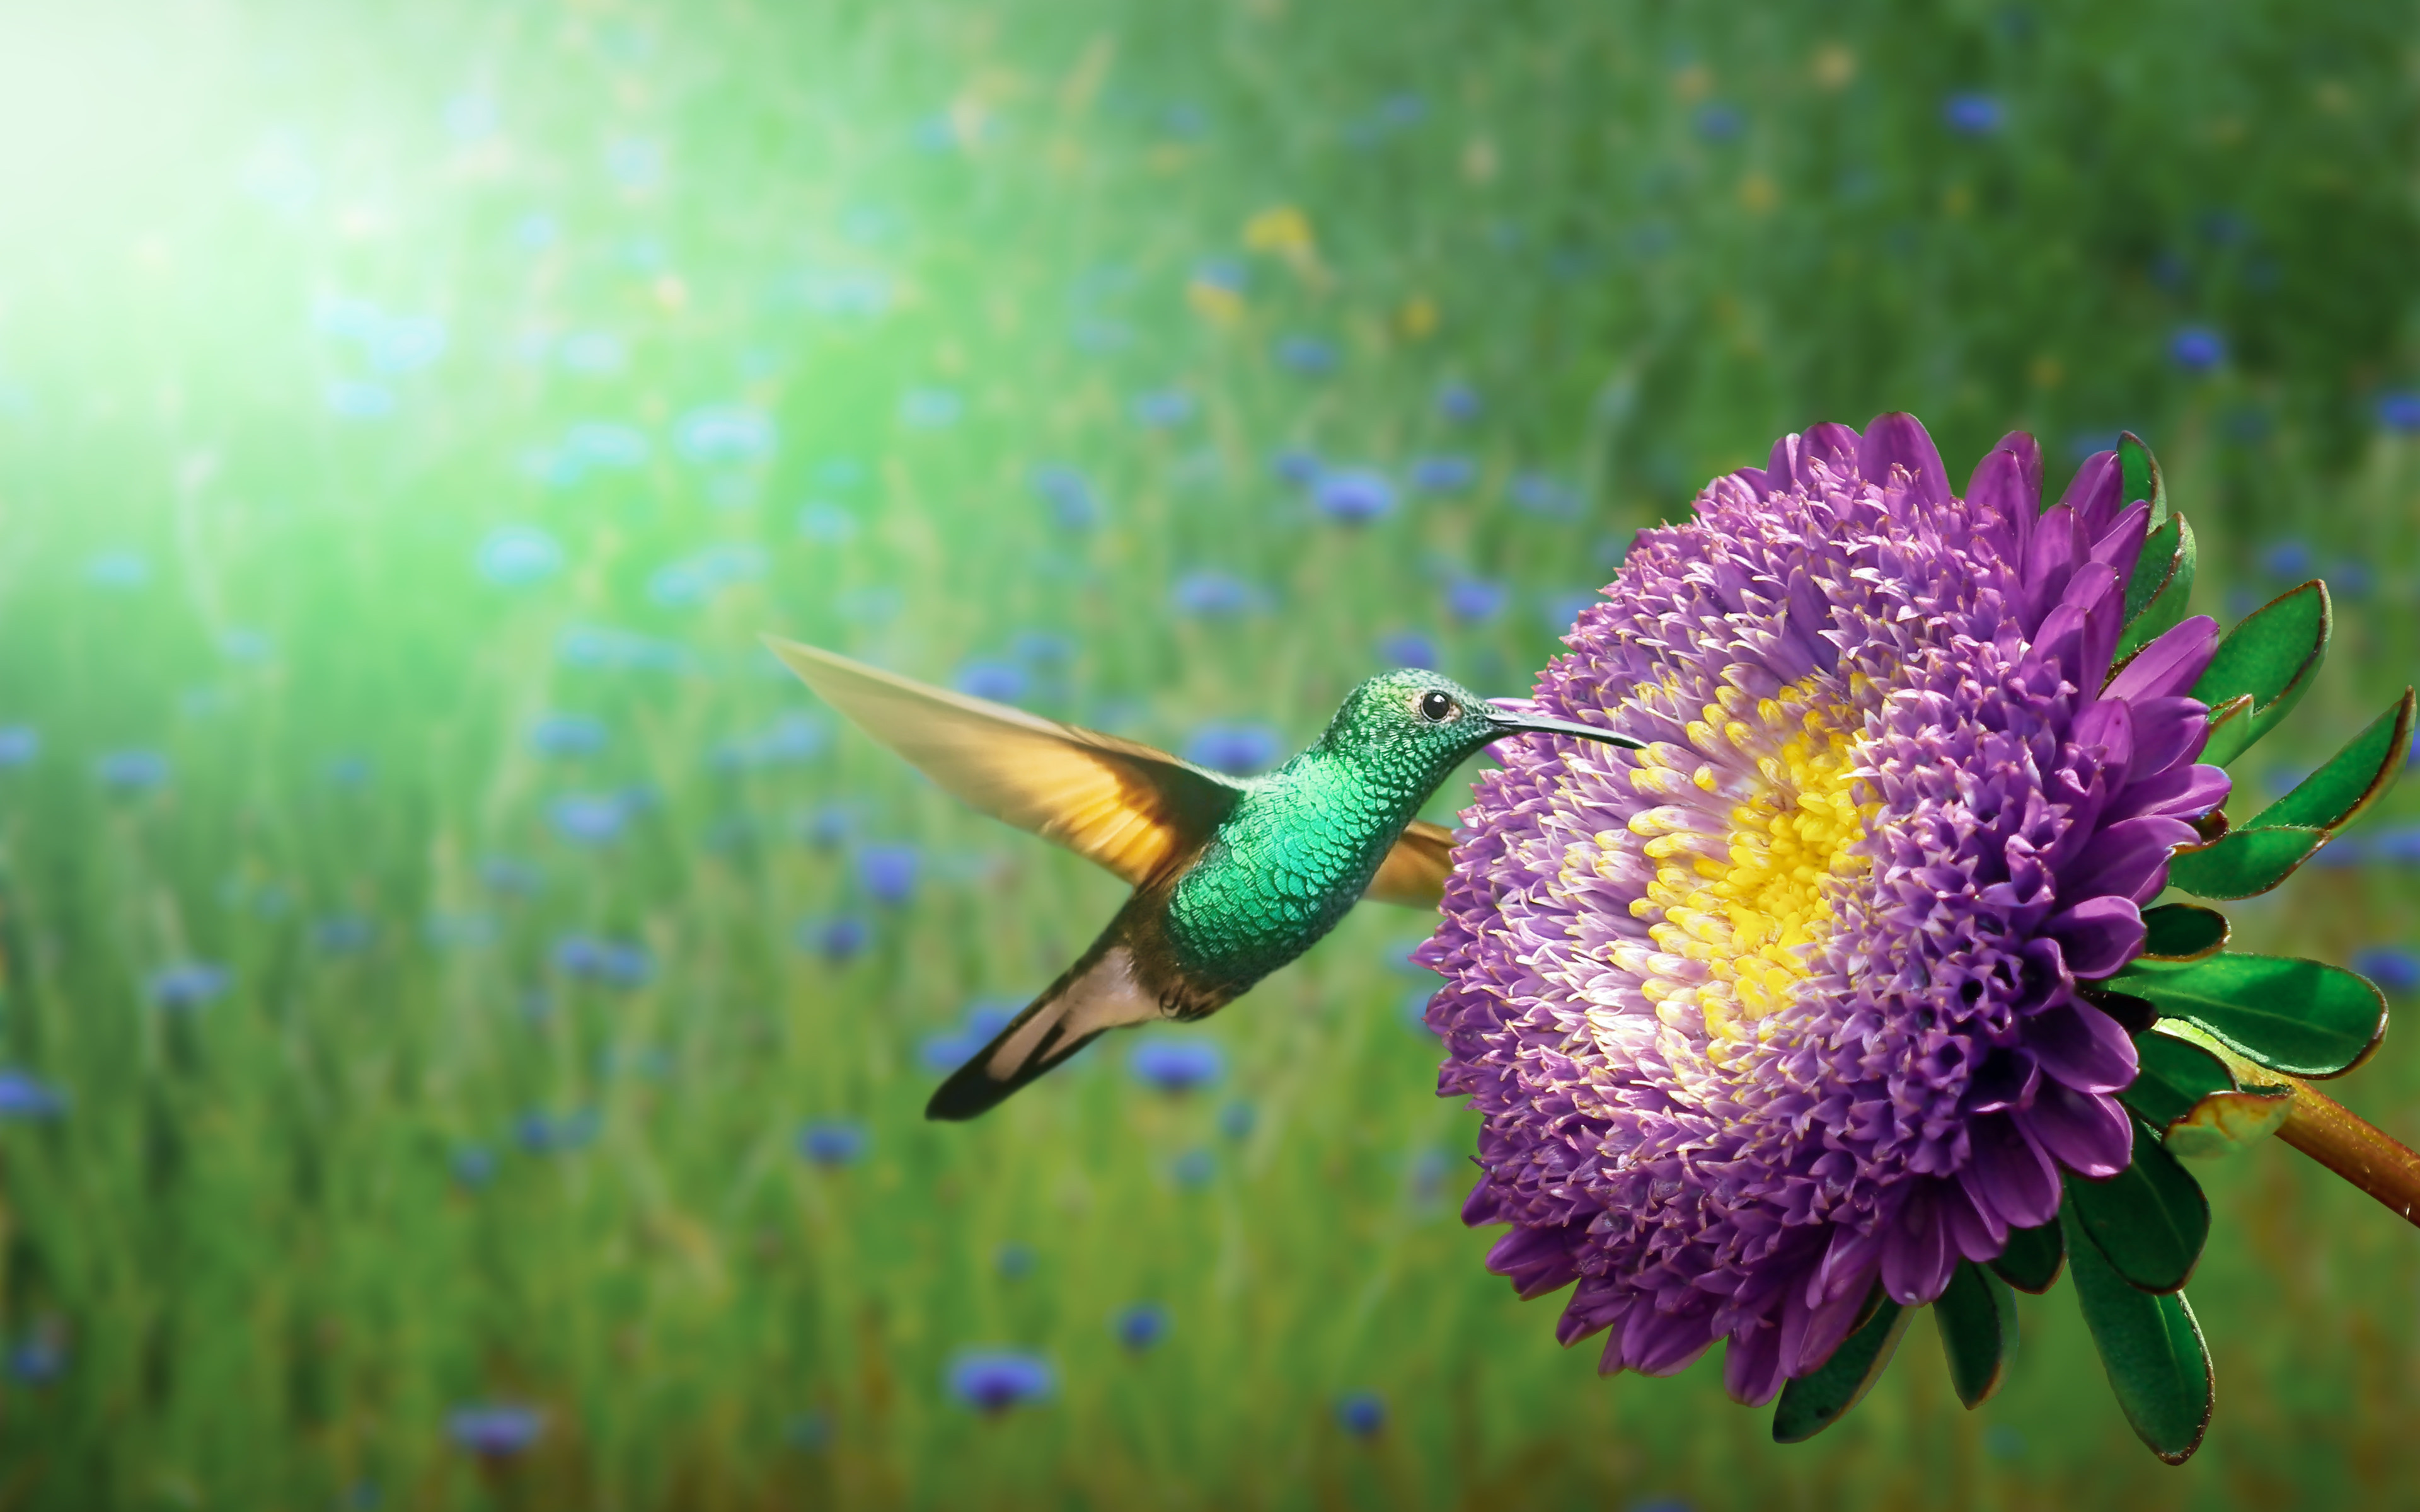 Hummingbird wallpaper 3840x2400